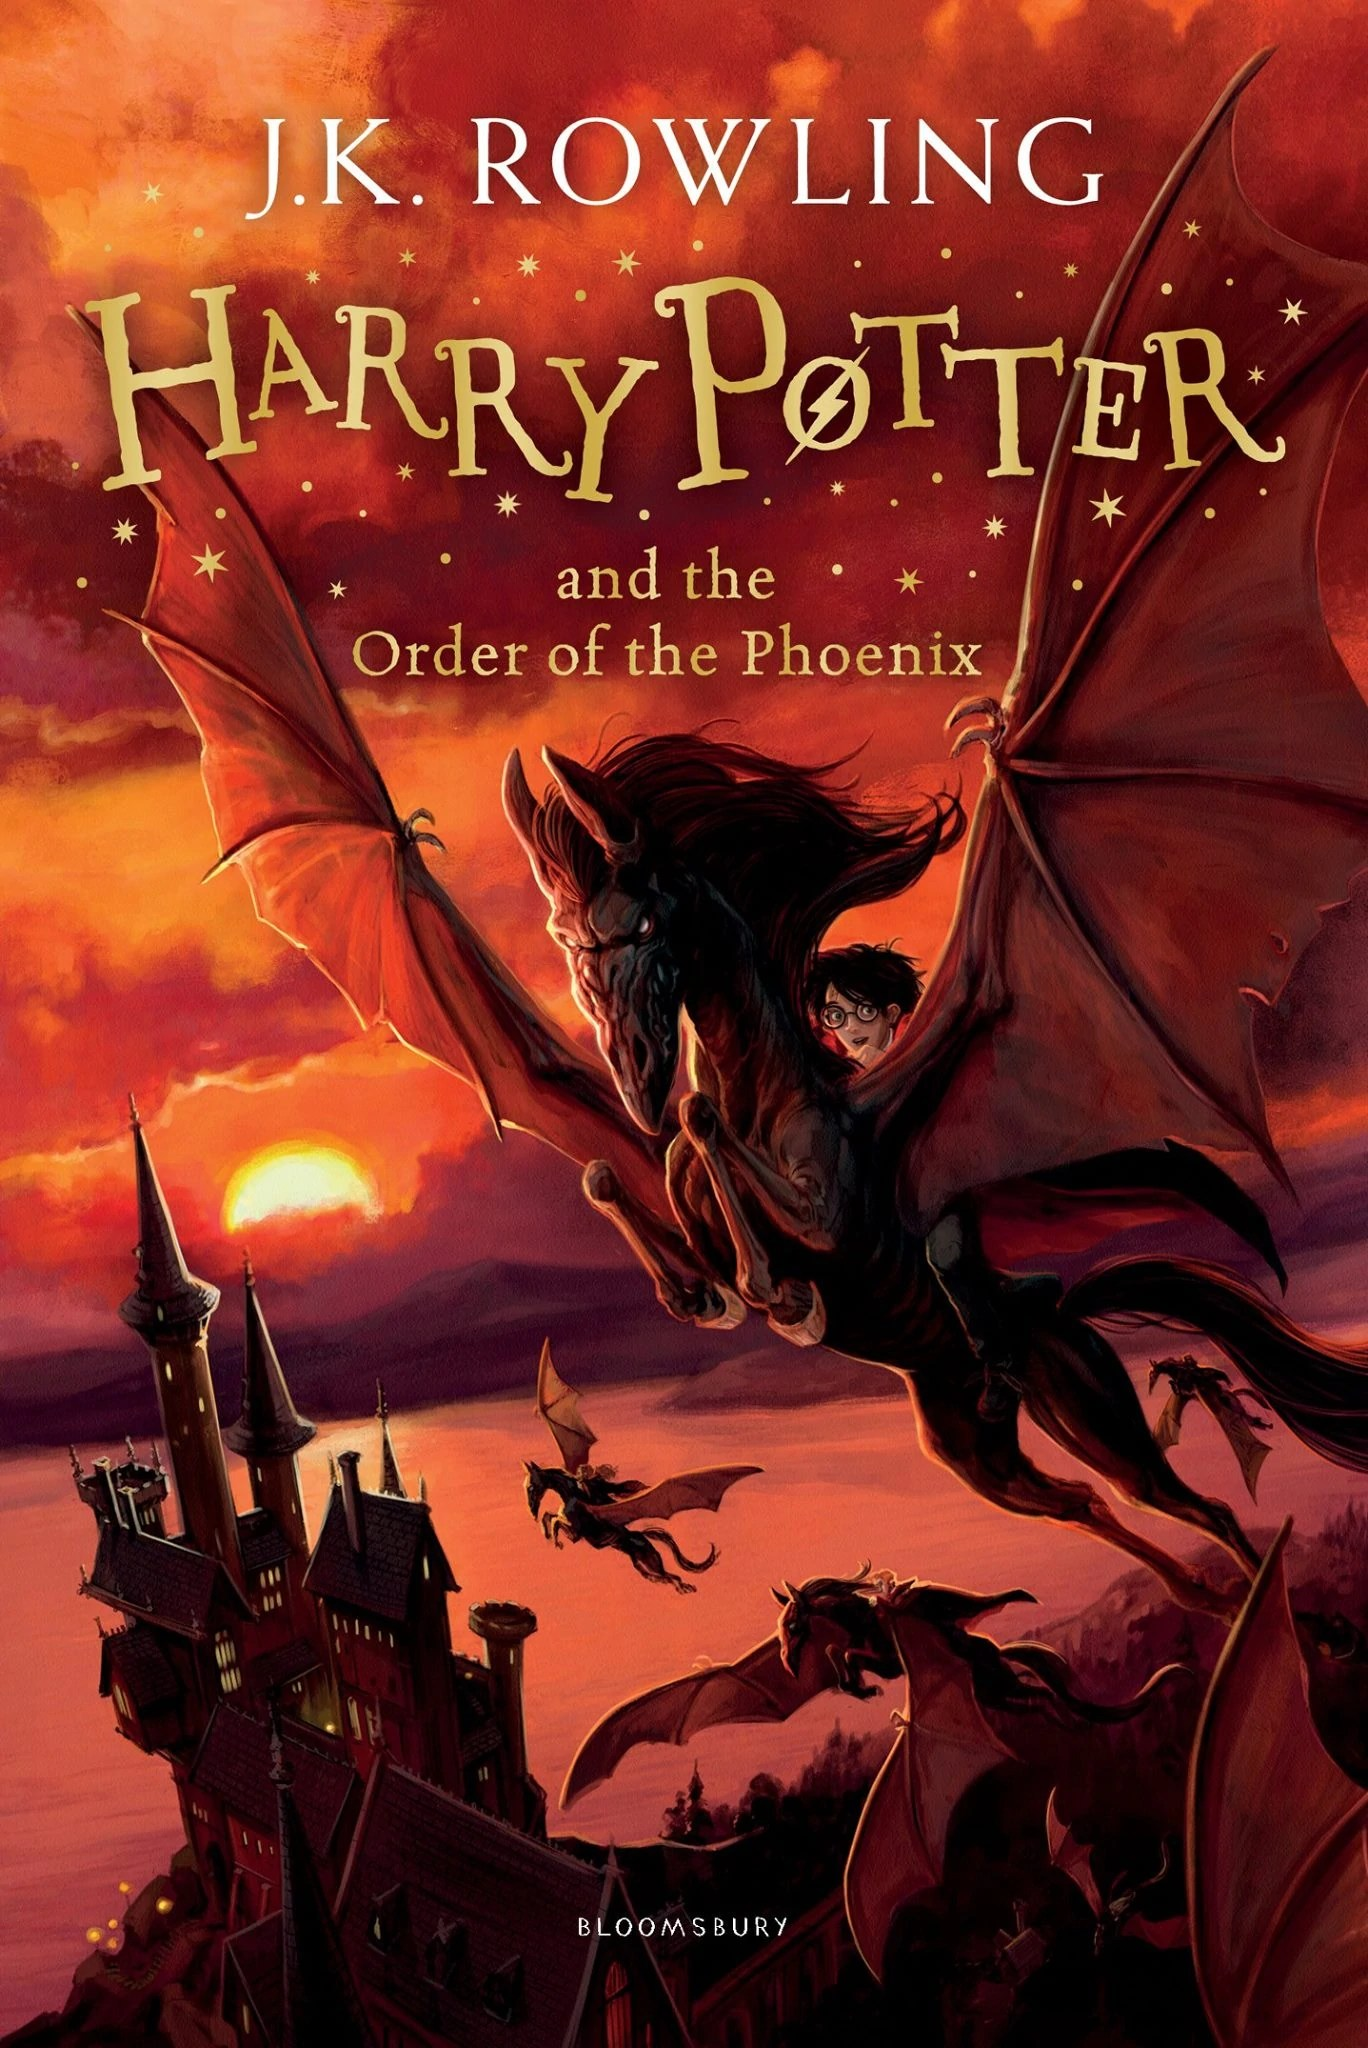 Dan Brown Libros Orden Harry Potter And The Order Of The Phoenix Harry Potter Wiki